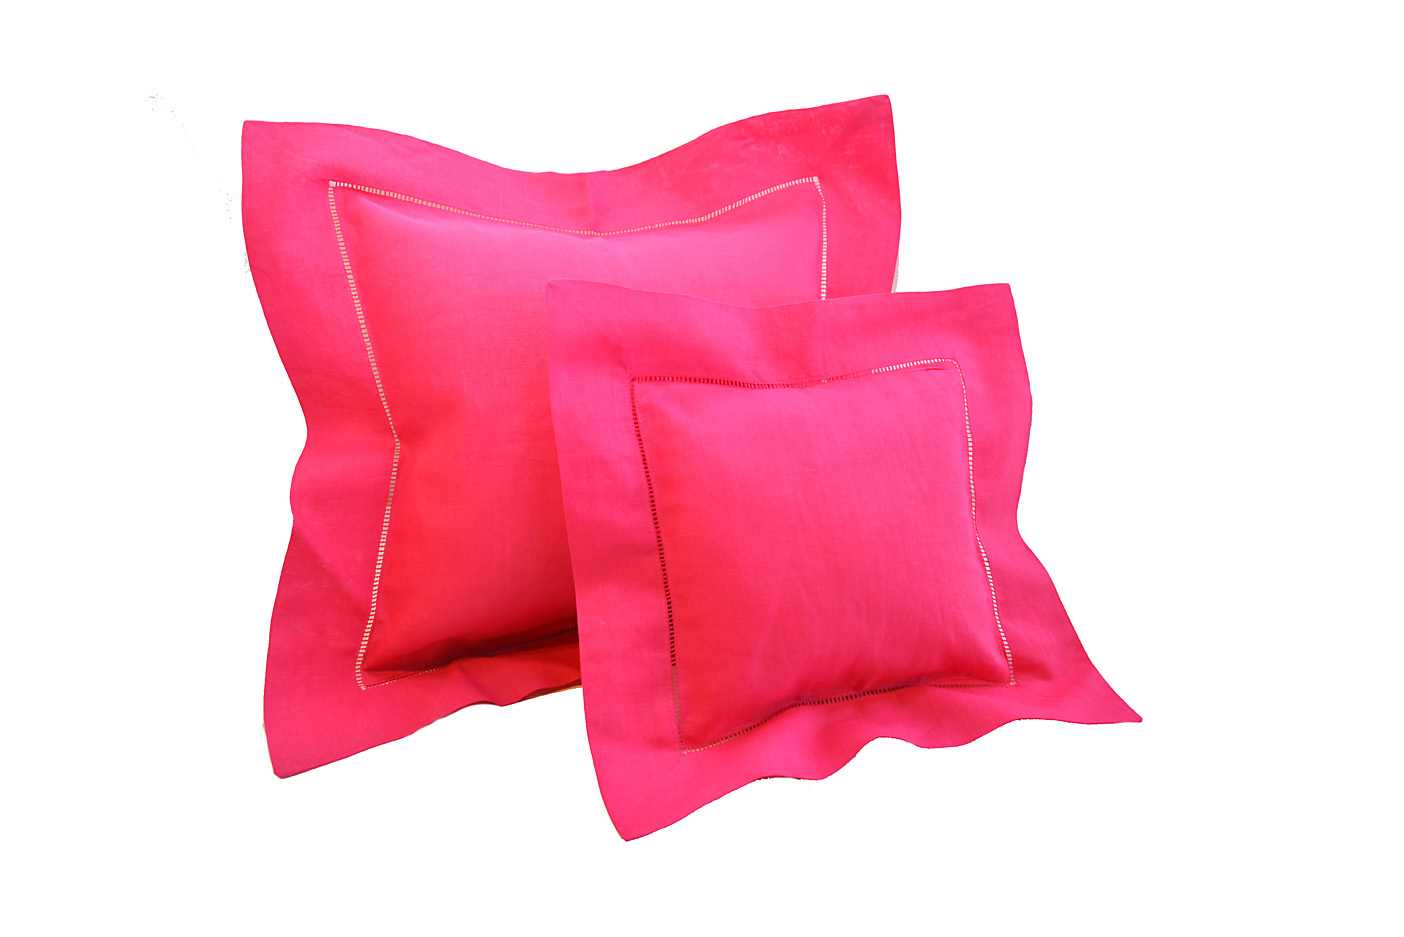 Baby Pillows. Pink Peacock colored